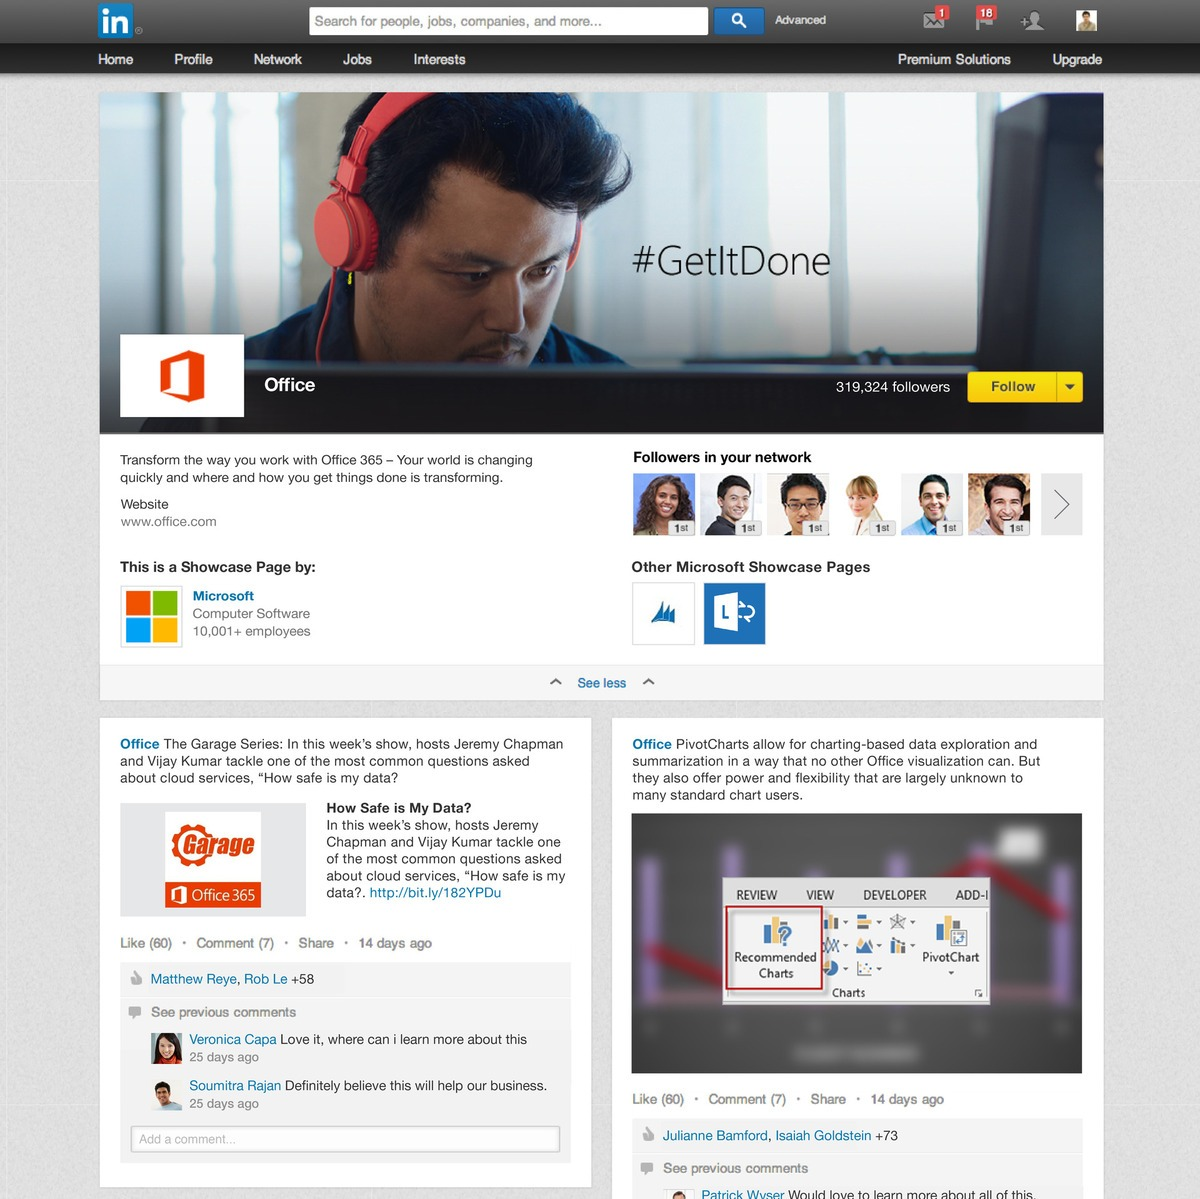 microsoft-office-showcase-page-view-2